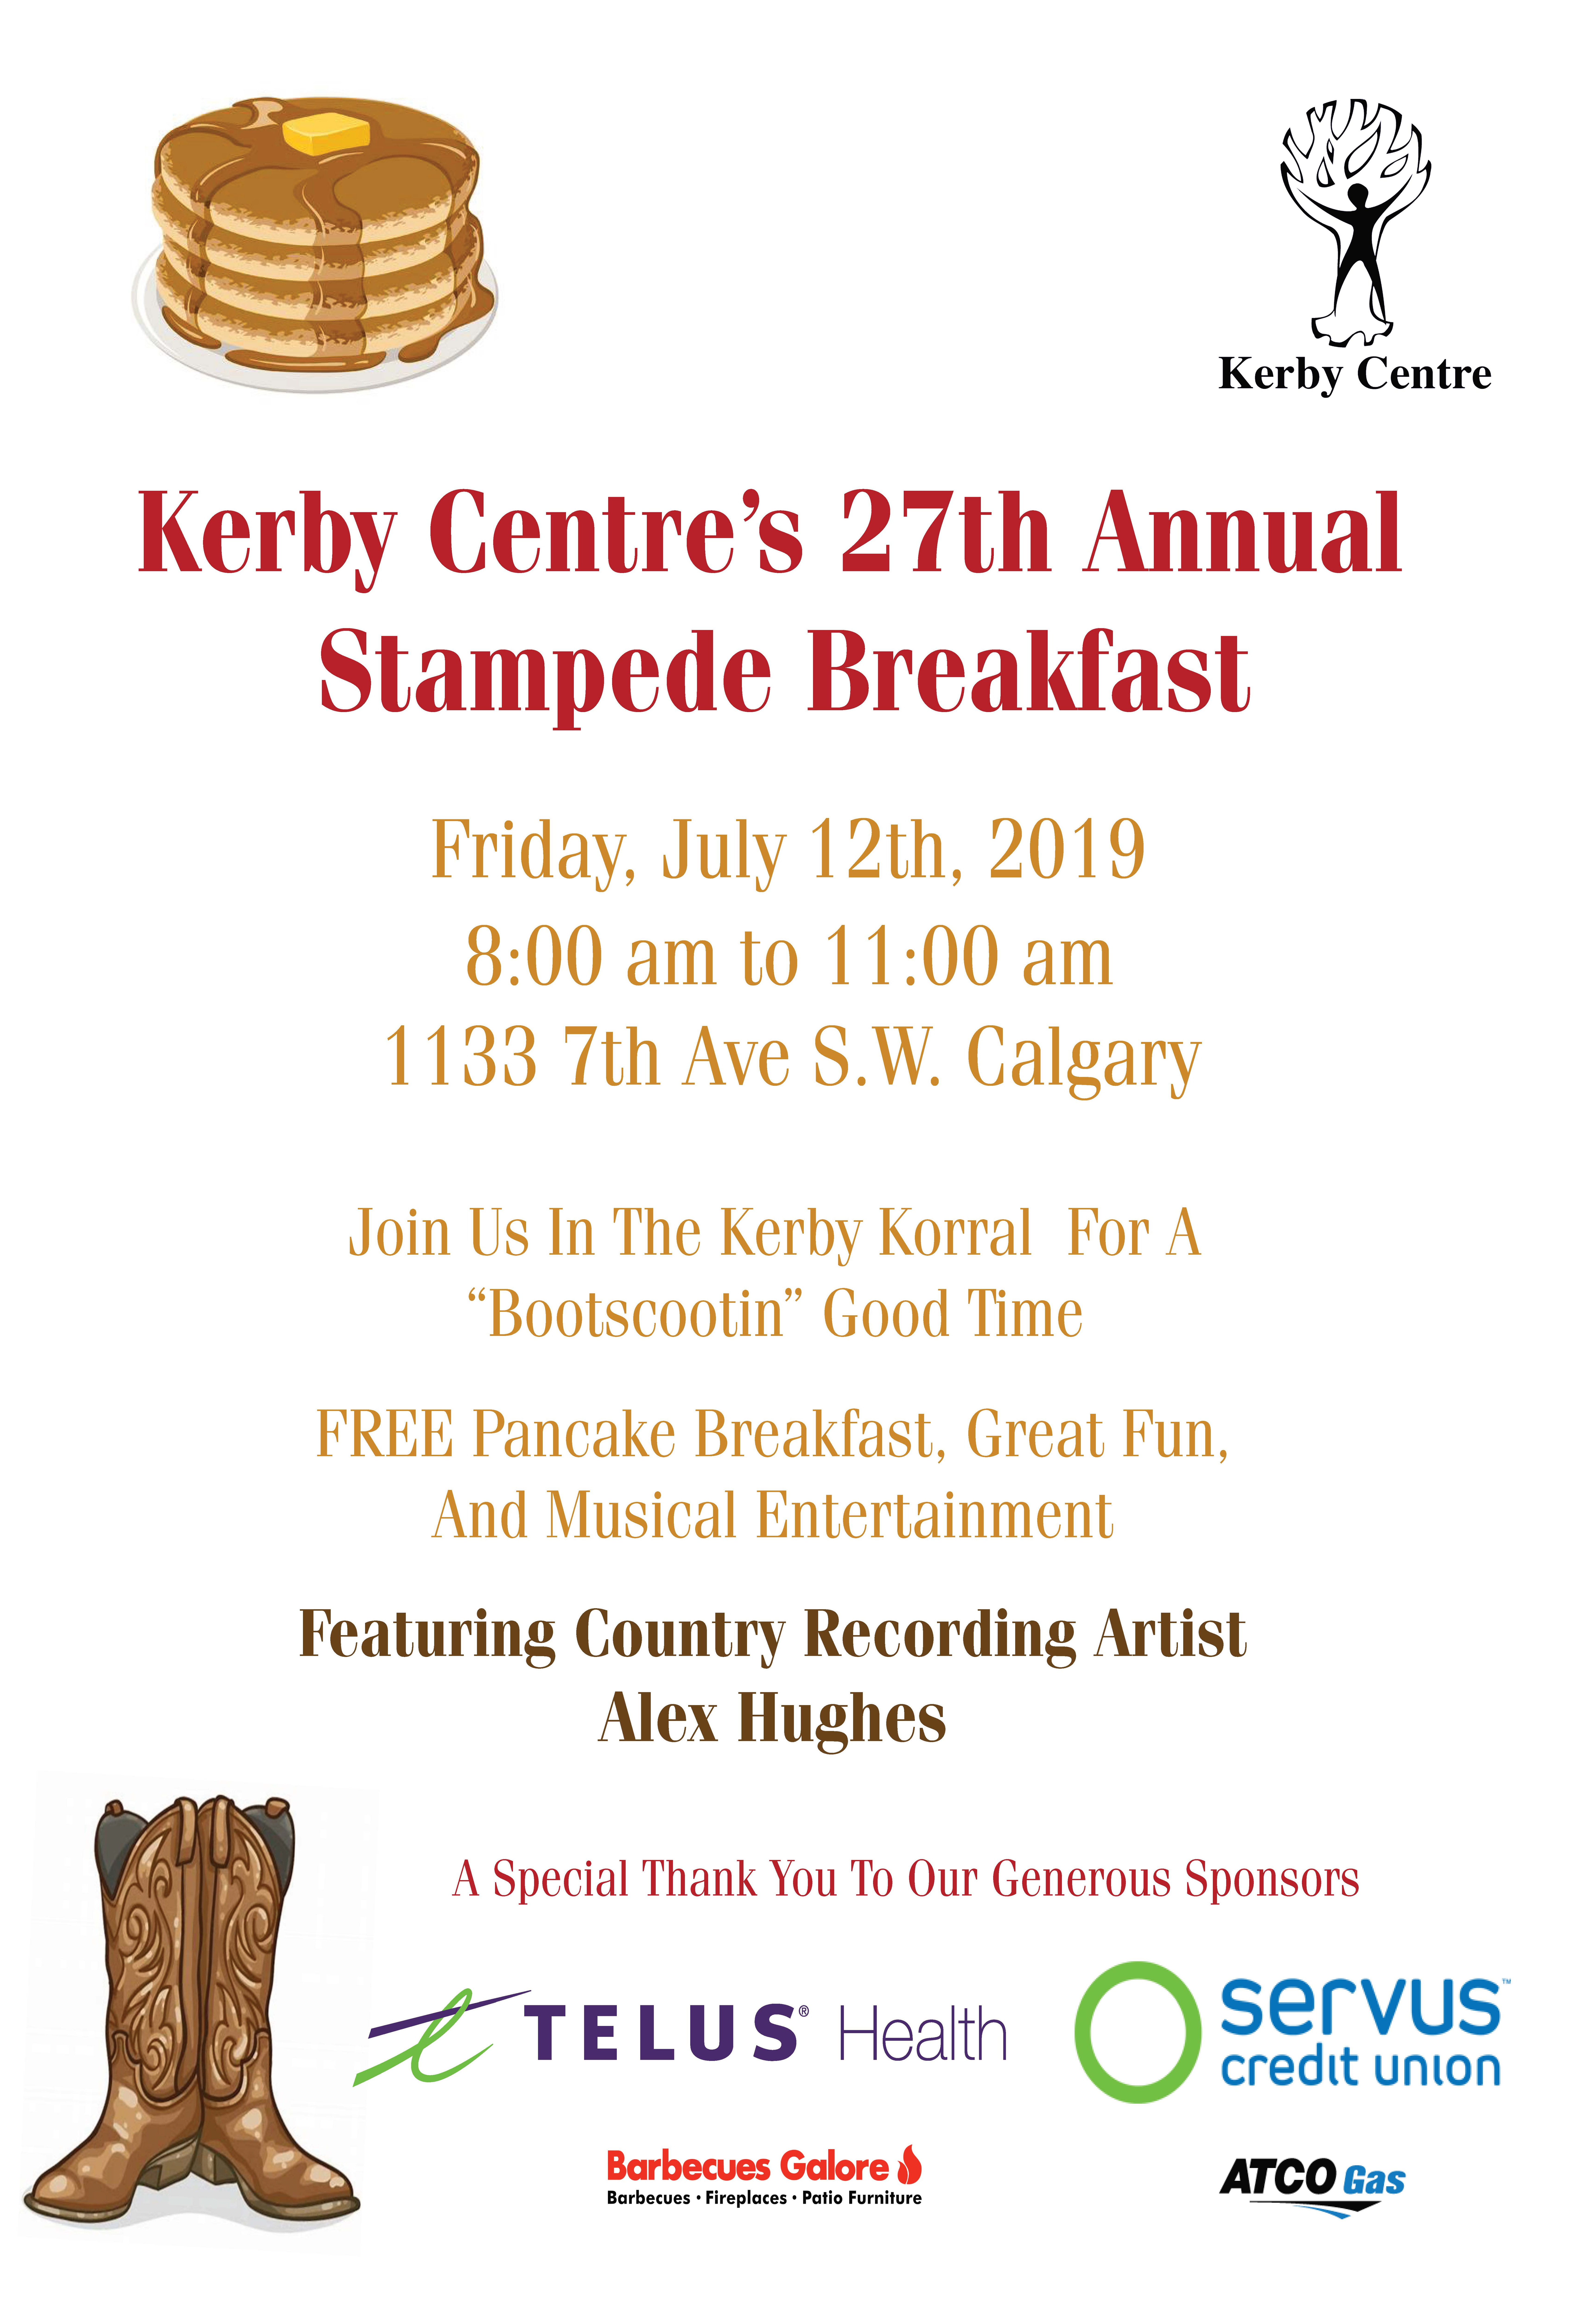 Kerby Centre 27th Annual Pancake Breakfast Stampede